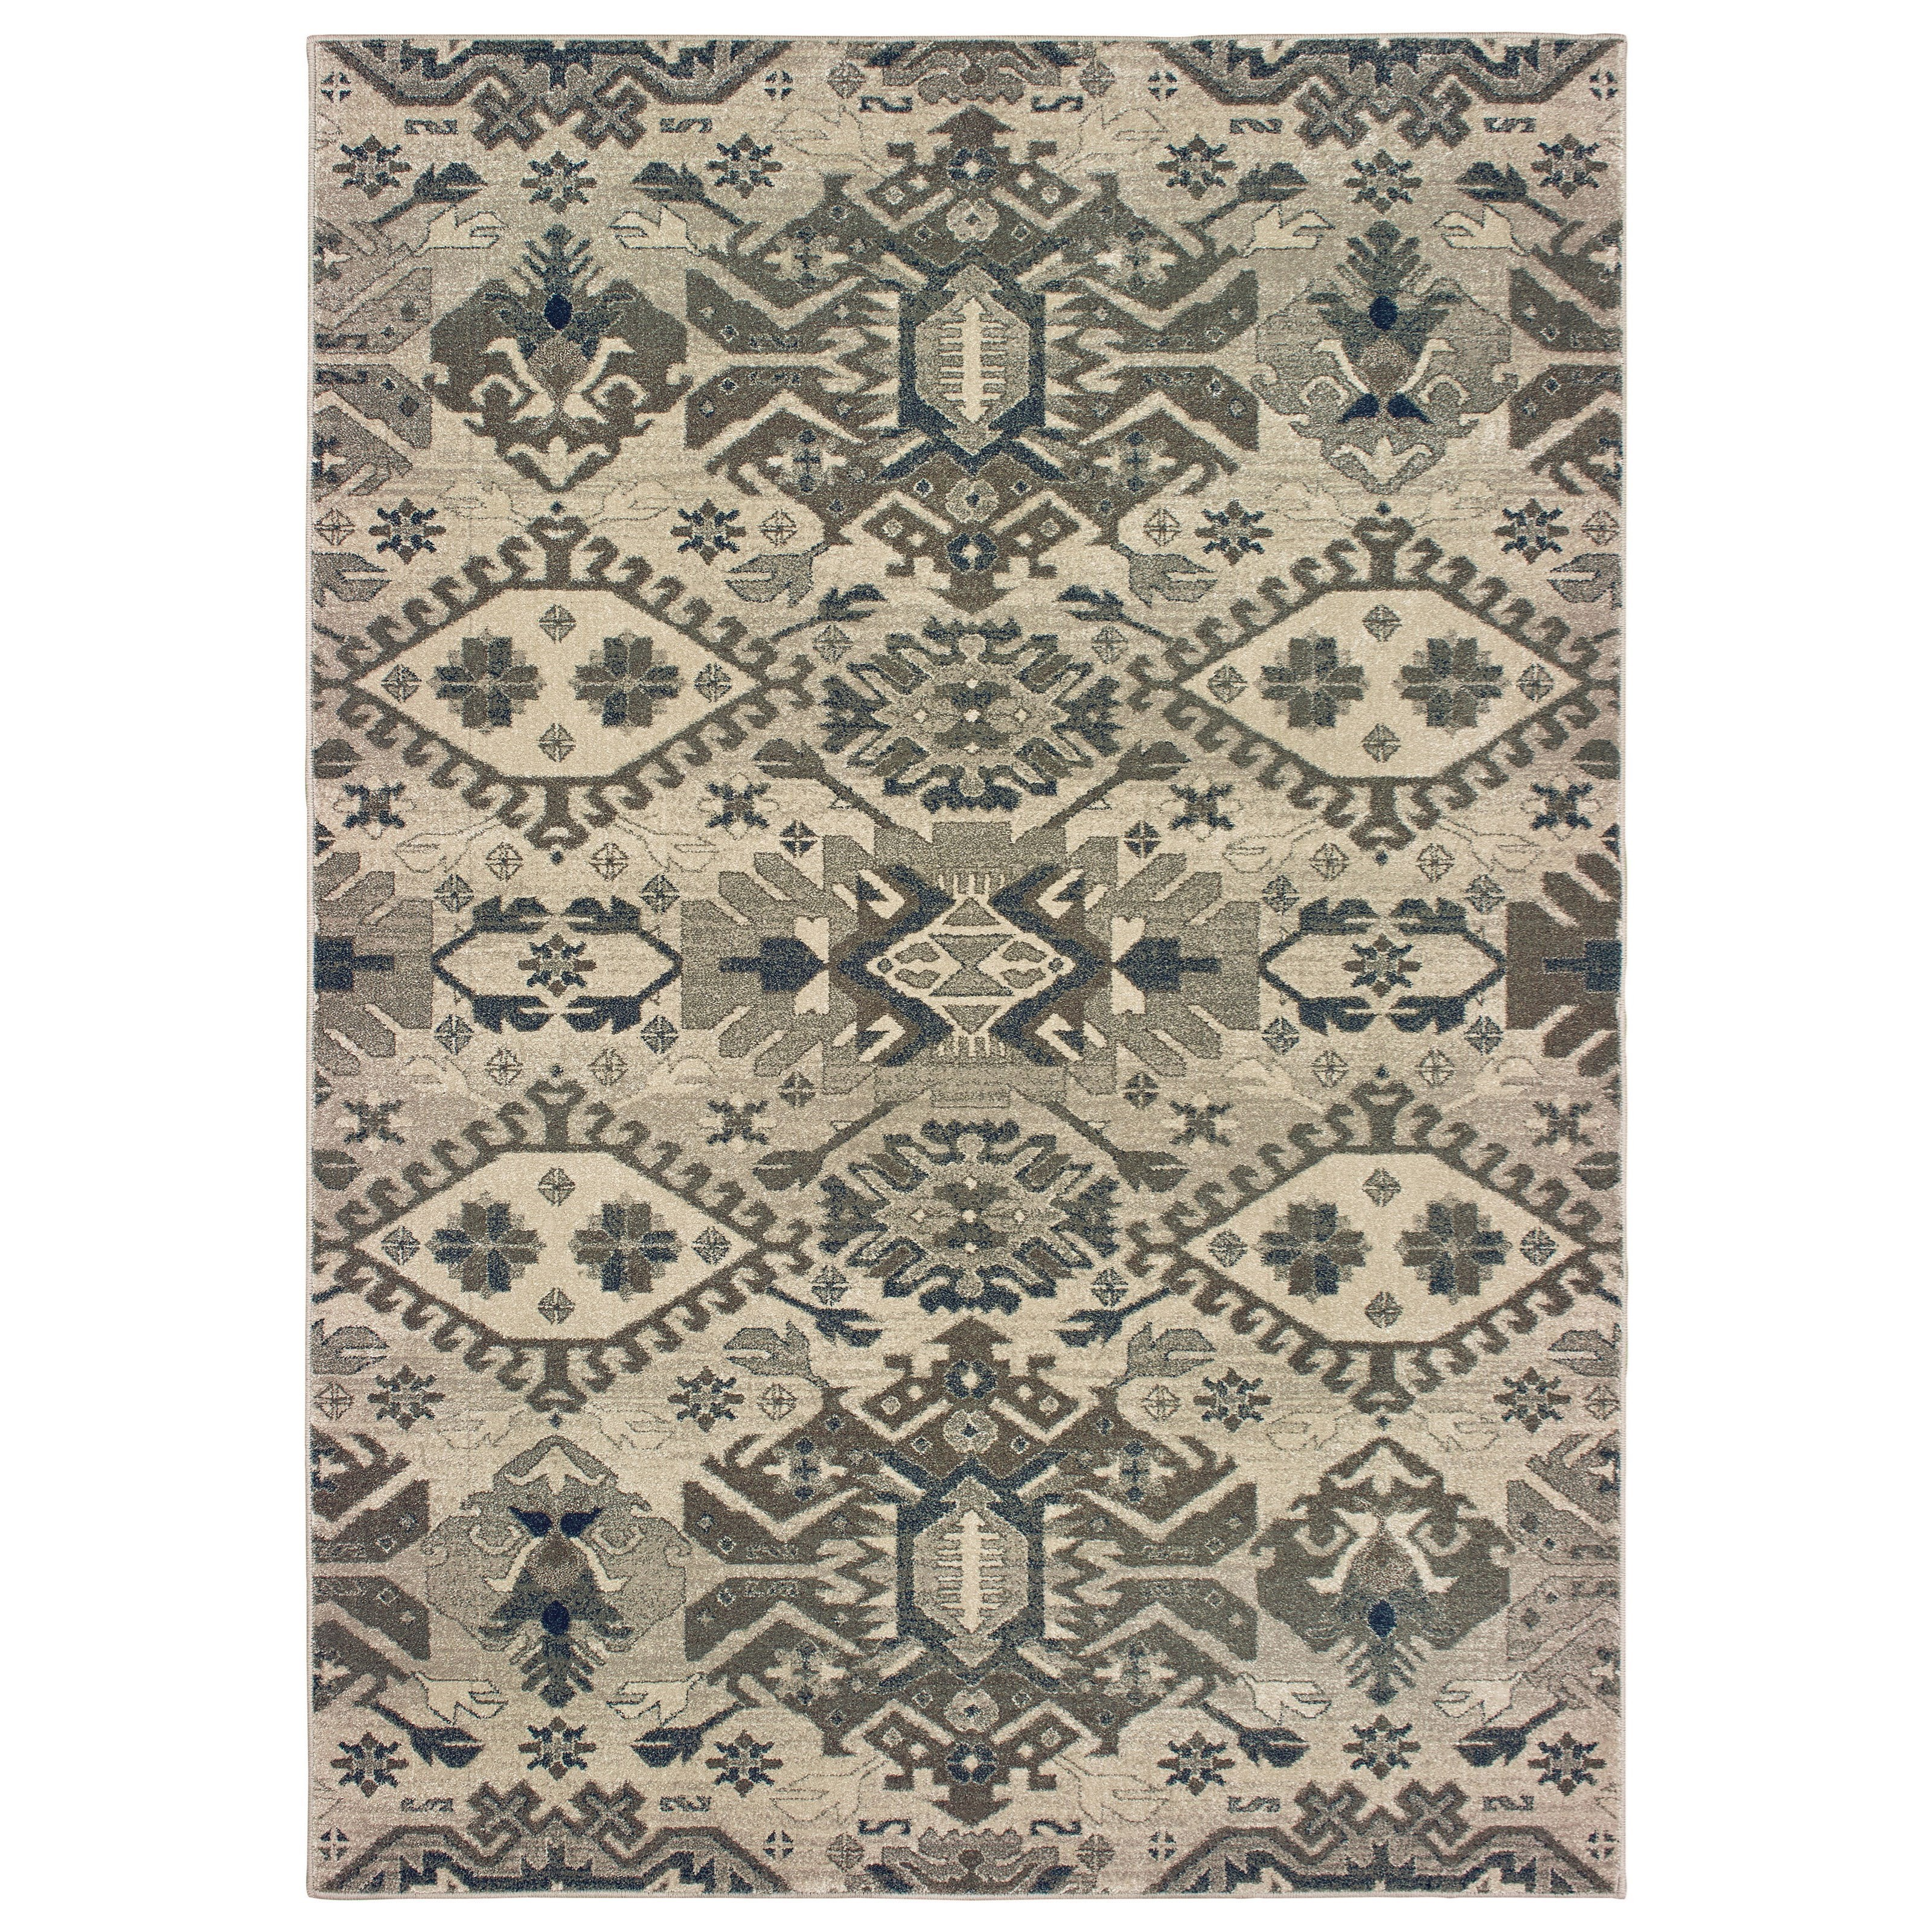 "Richmond 5' 3"" X  7' 6"" Rectangle Rug by Oriental Weavers at Furniture Superstore - Rochester, MN"